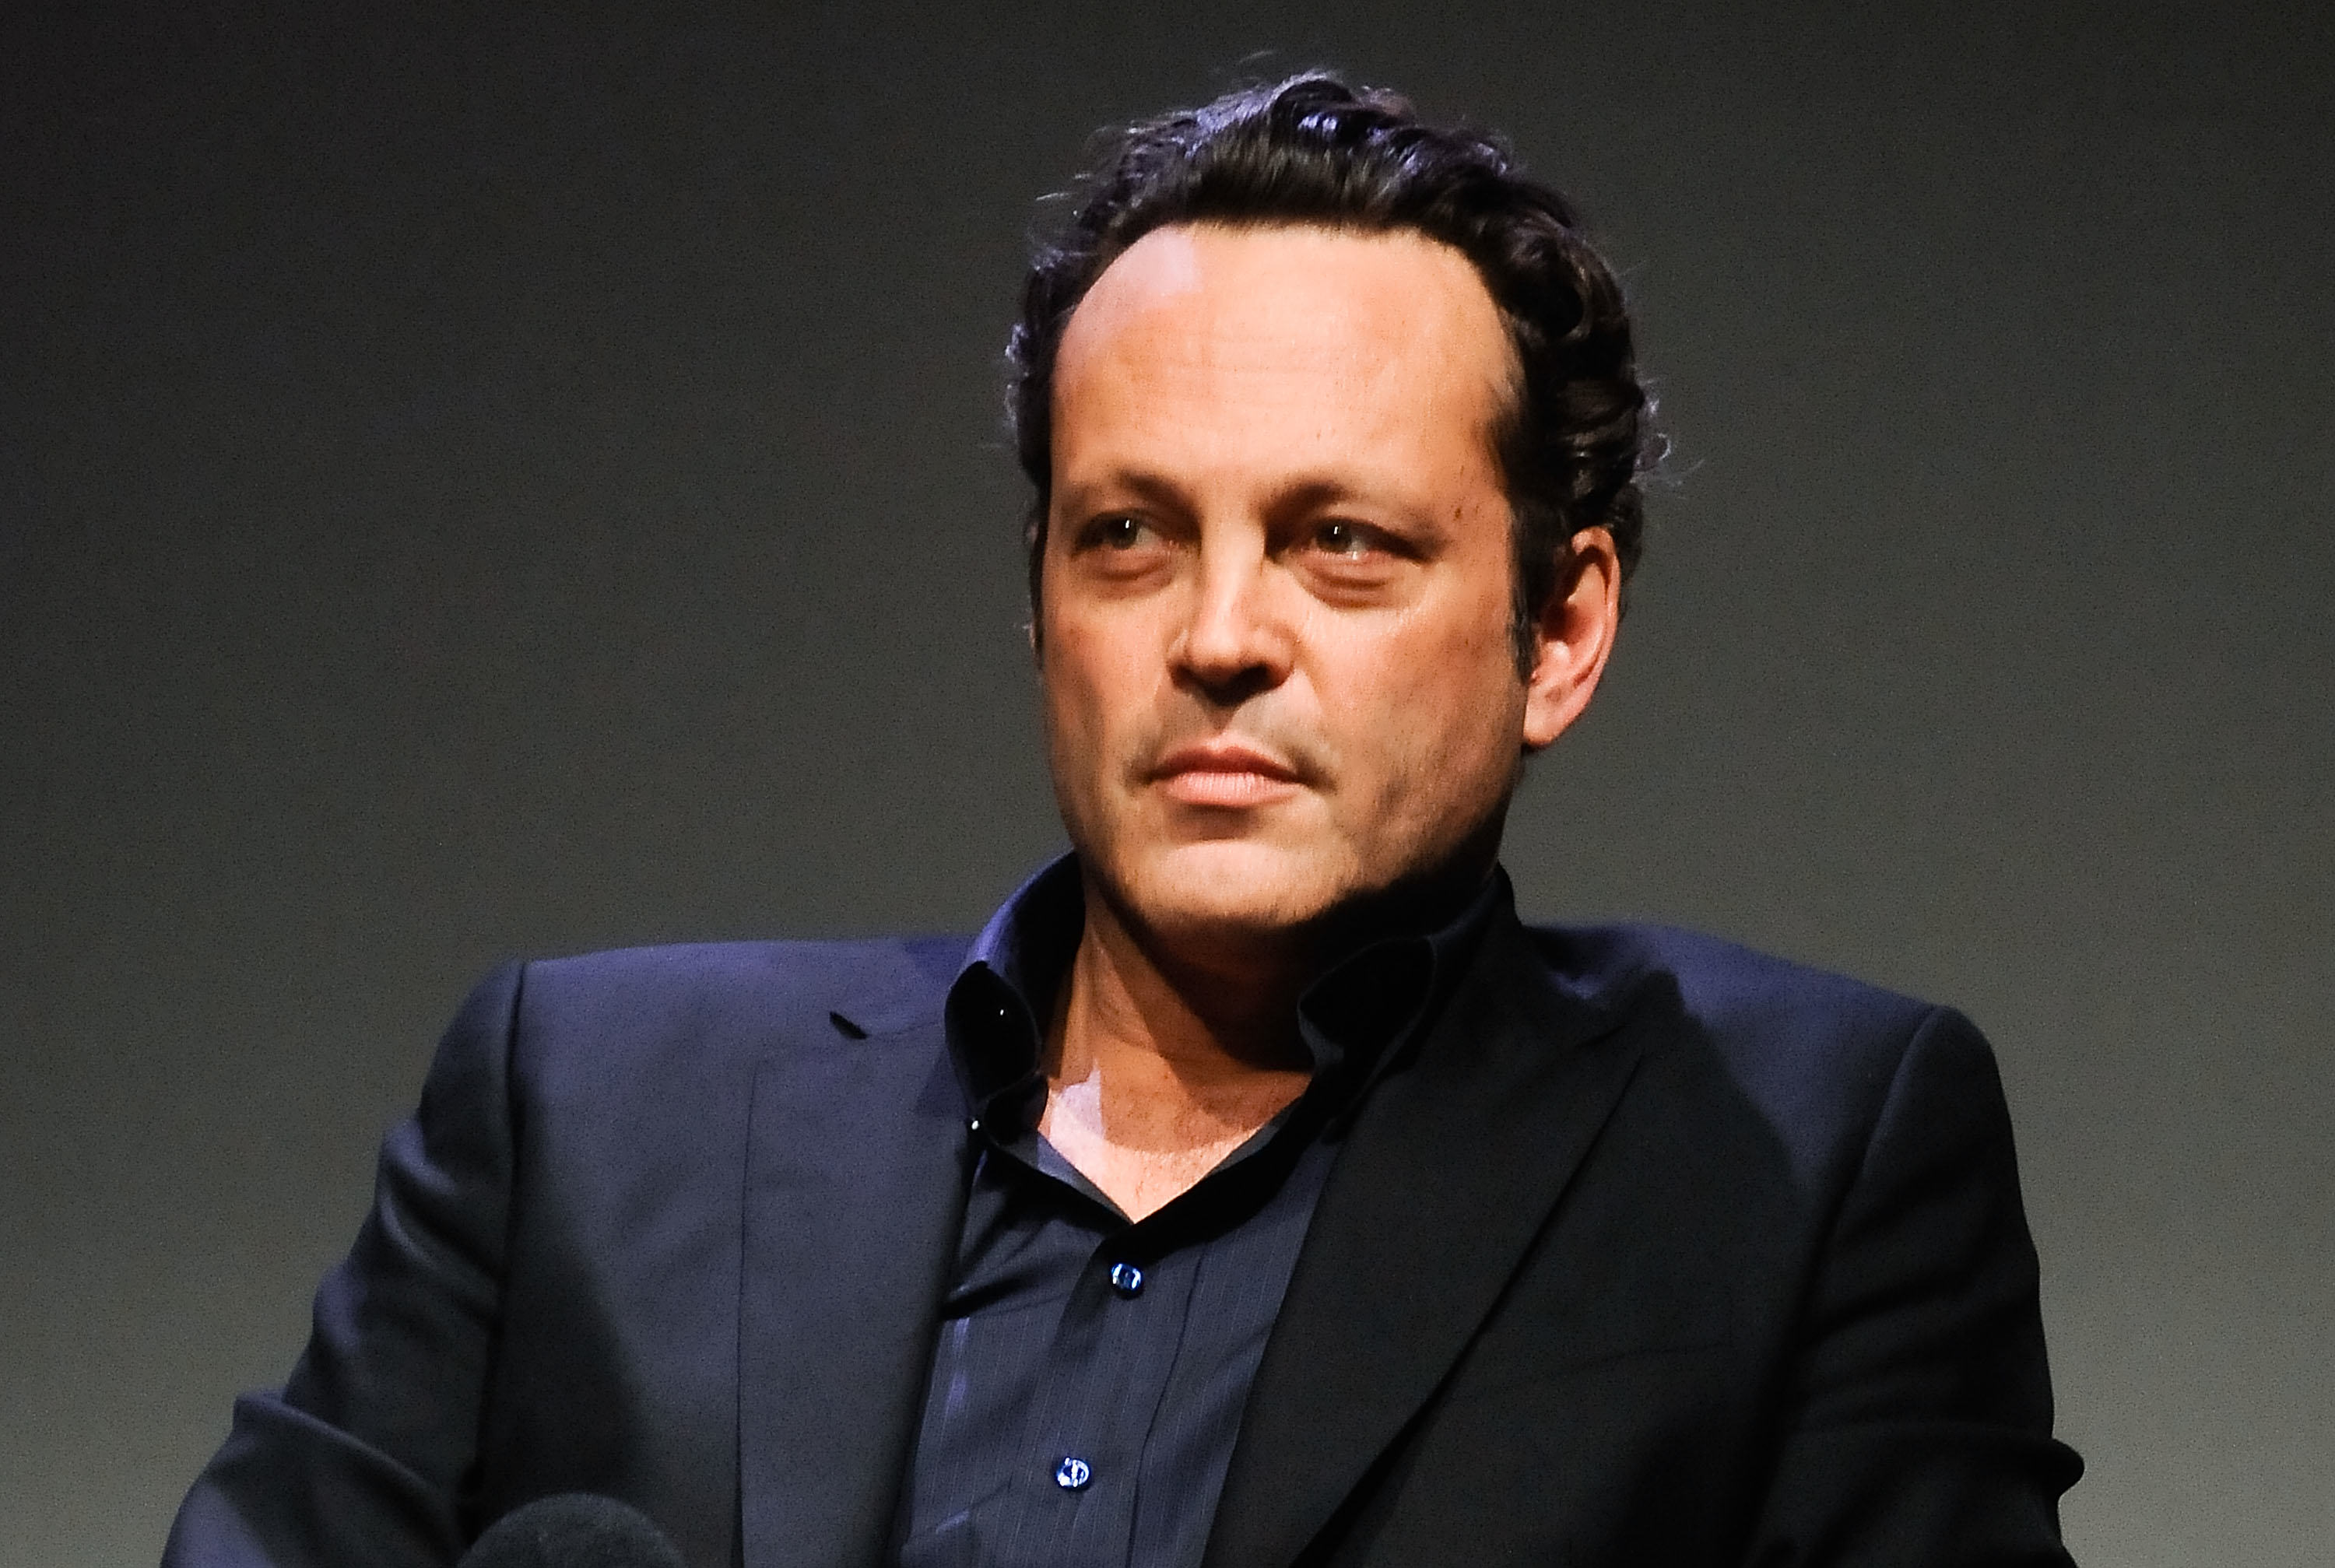 vince vaughn oscars Intelligence Capabilities Exposed By Edward Snowden Shut Down, Was He A Hero After All?